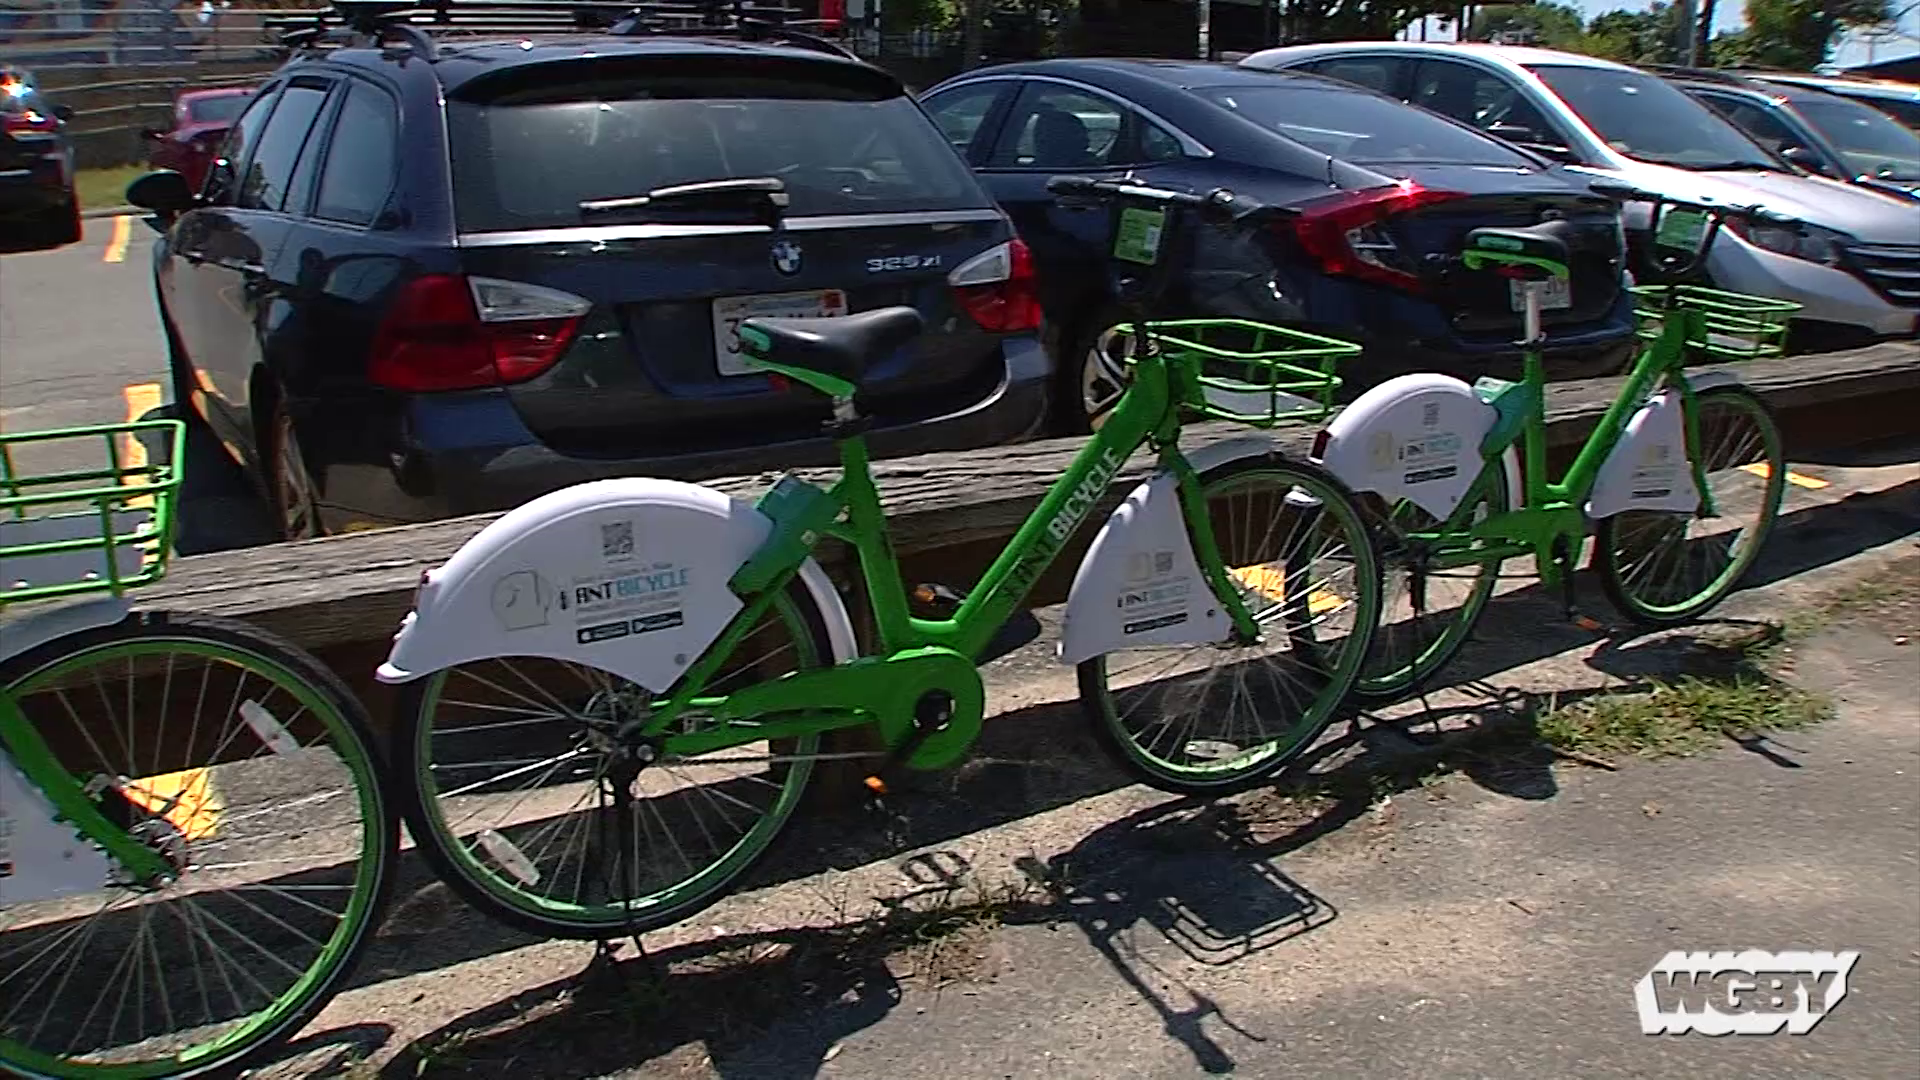 Once the only game in town, Boston-based bike share company Hubway is facing new competition as new bike share companies set up shop in the city.